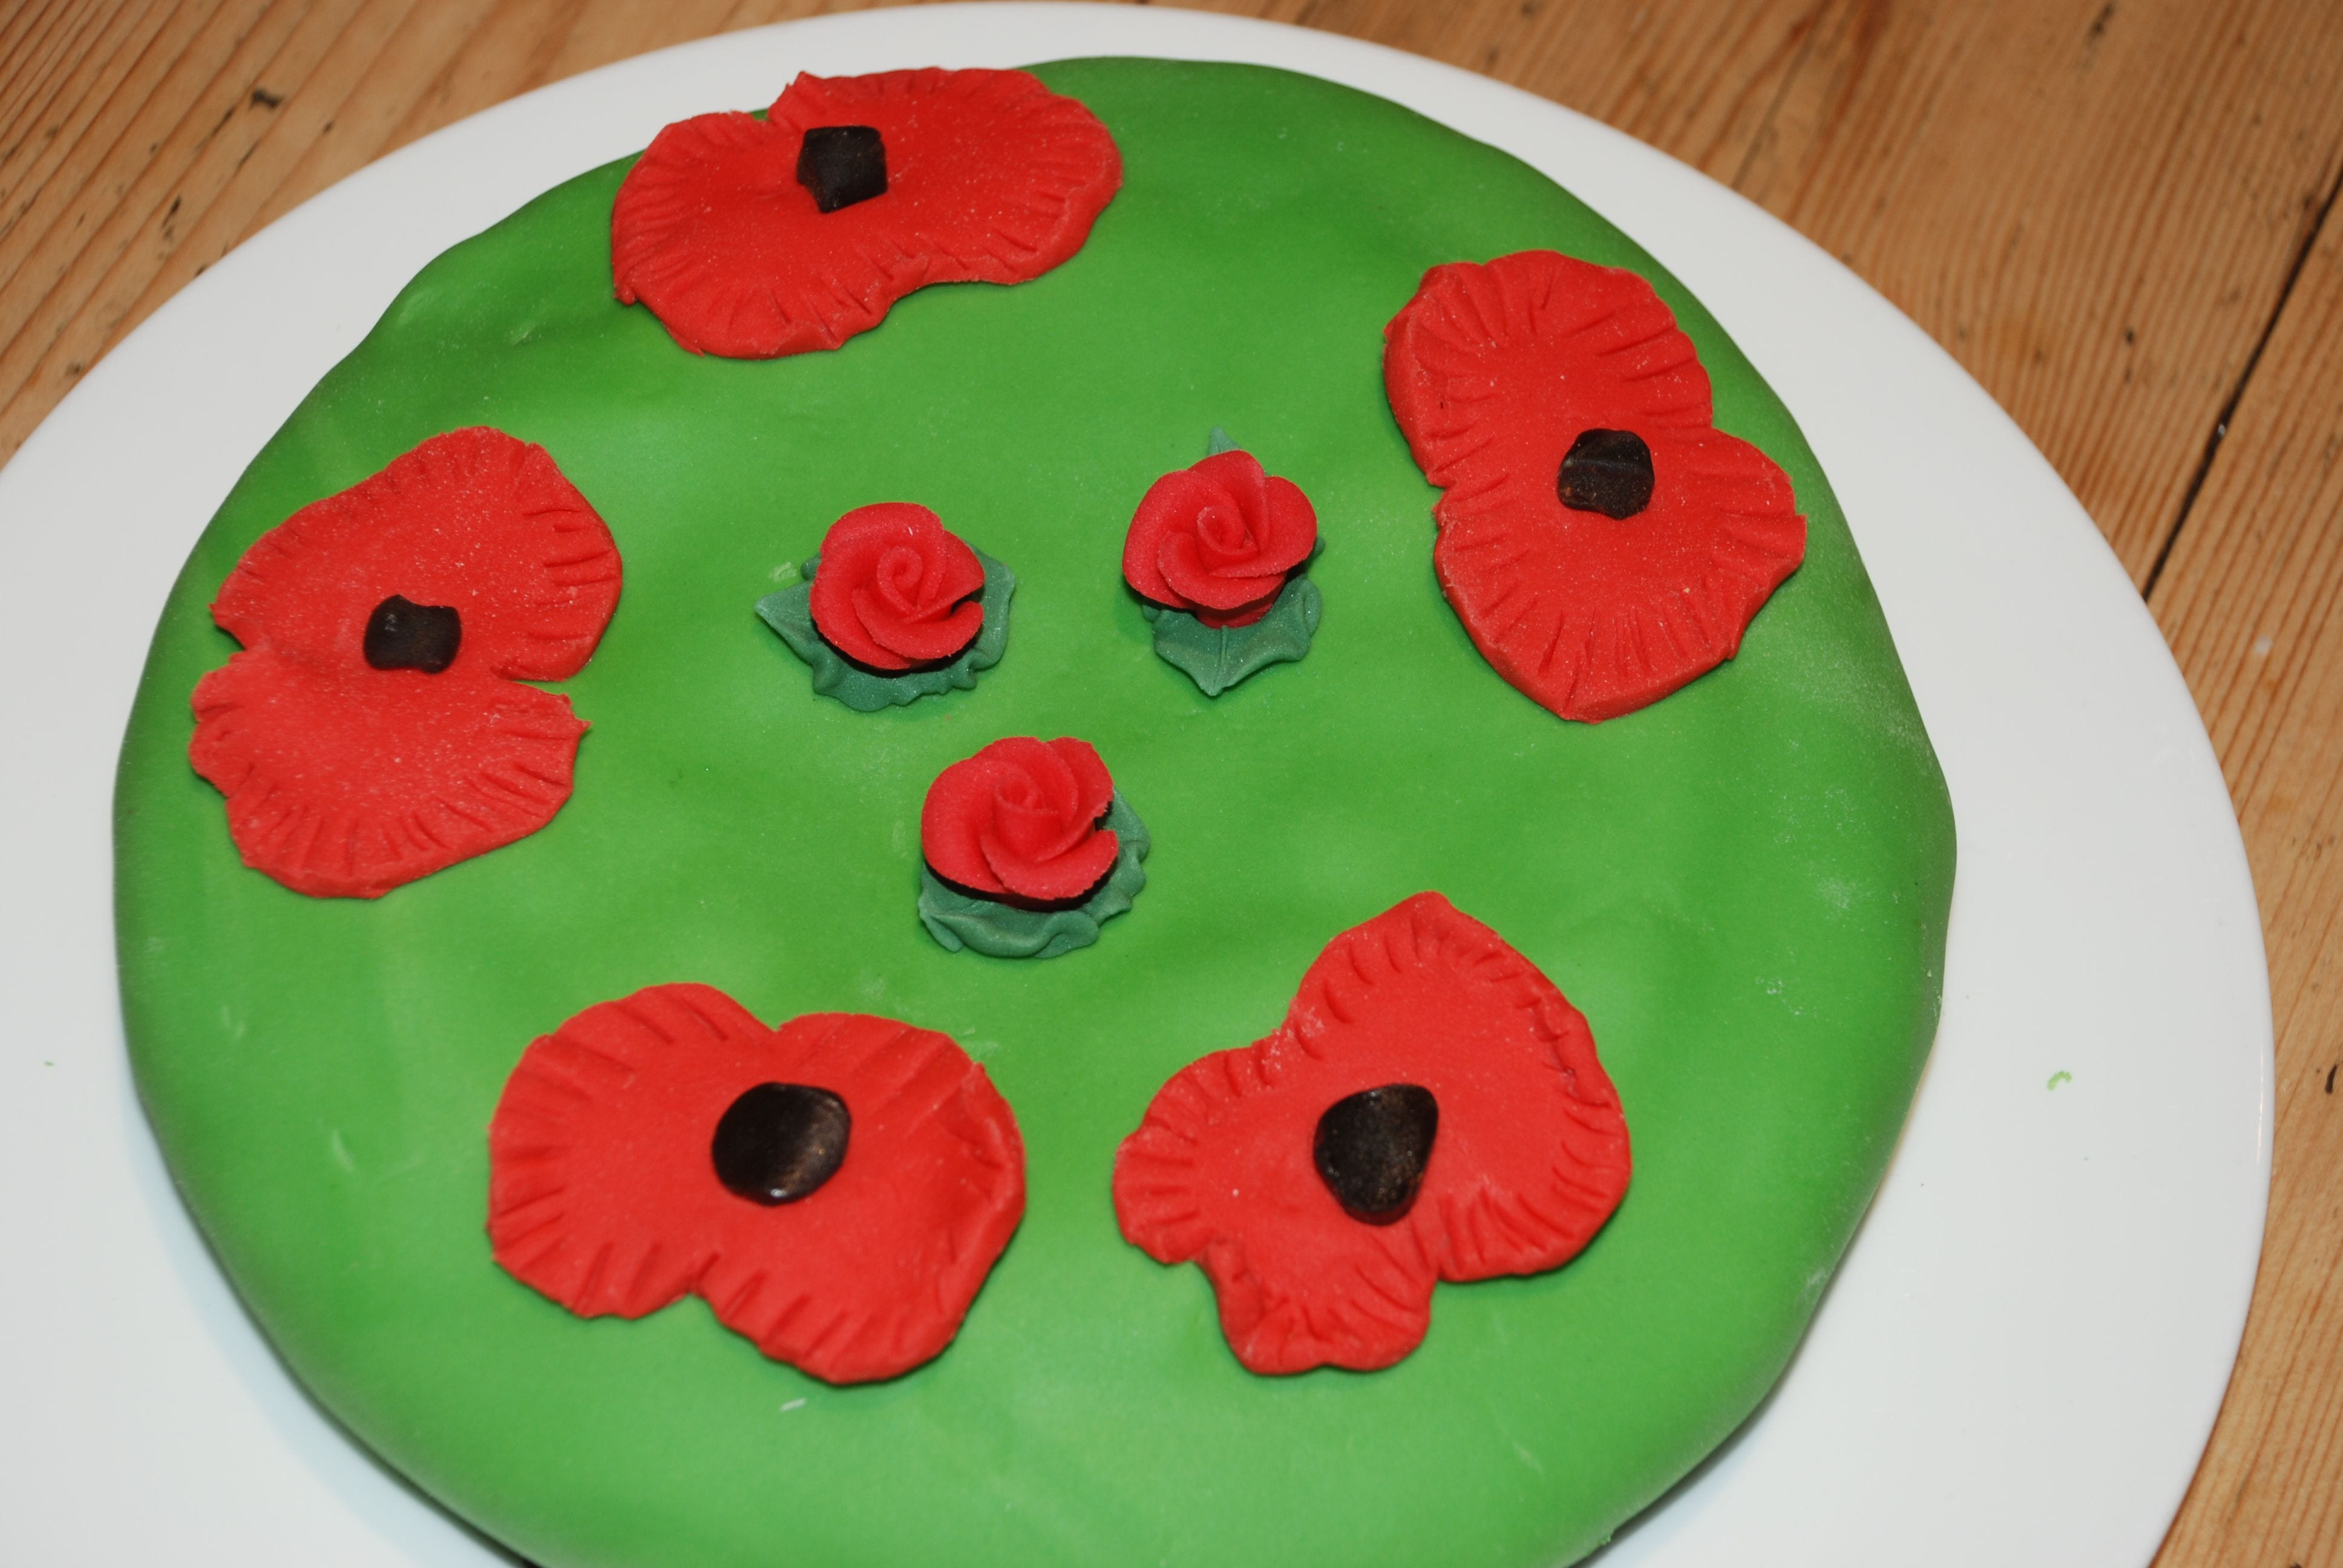 Recipes for remembrance the royal british legion forumfinder Images